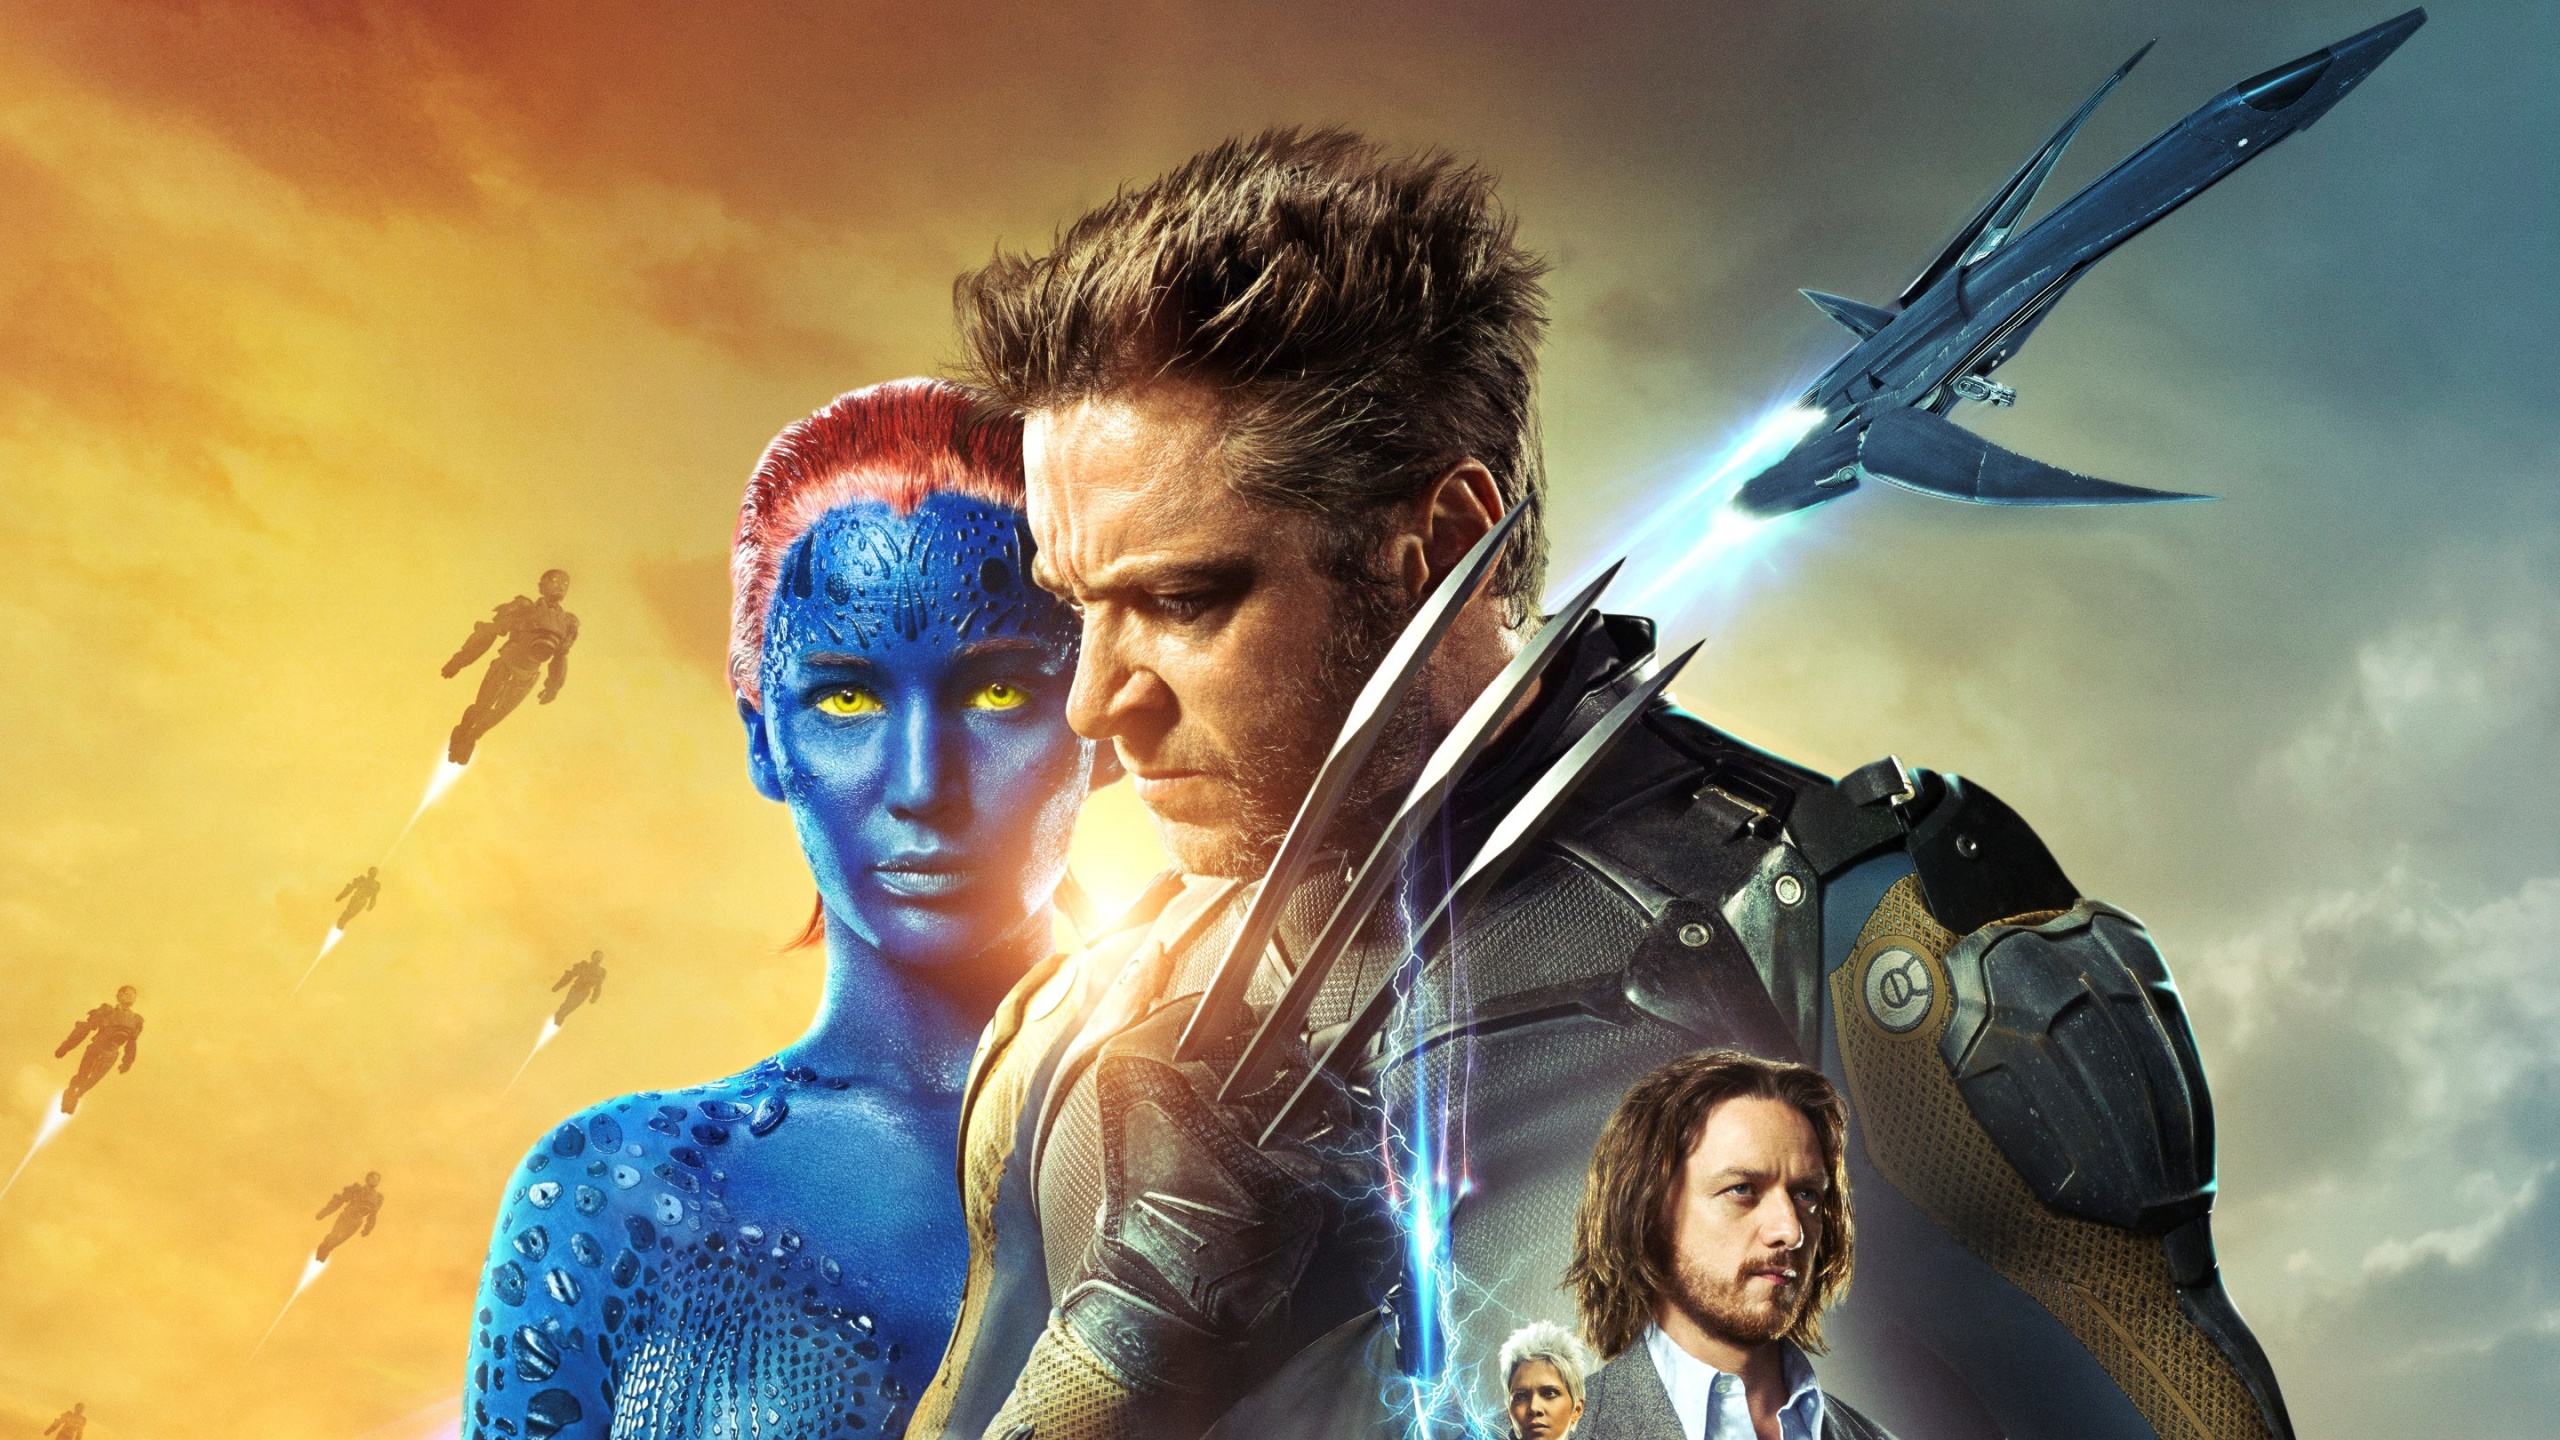 X Men Days Of Future Past Superheroes Wallpapers 2560x1440